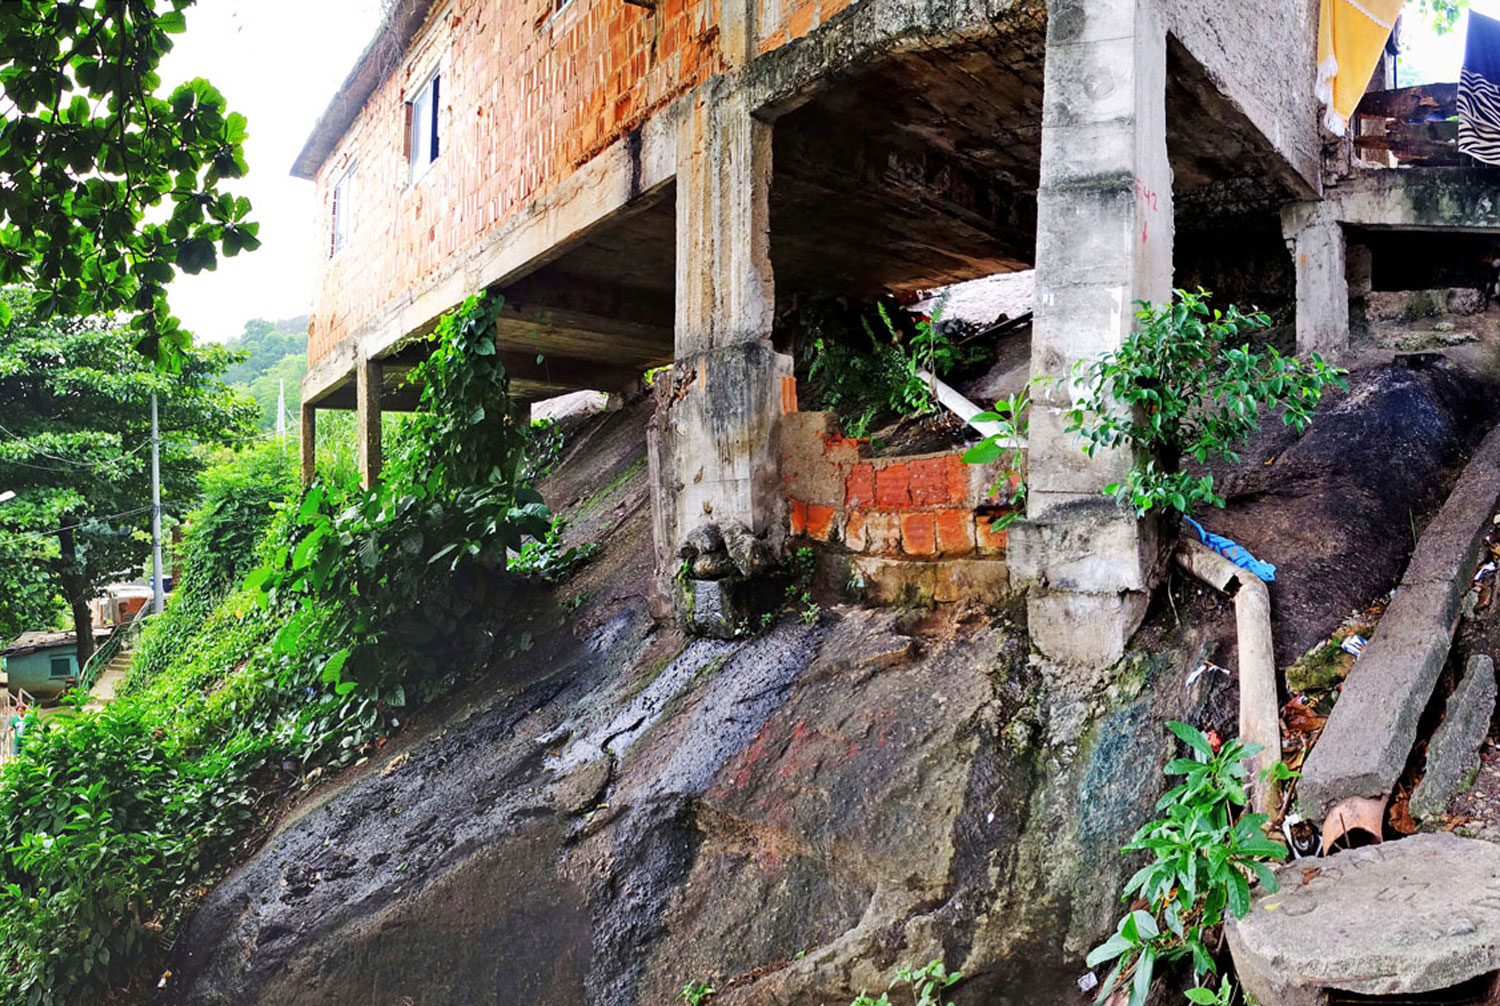 The construction and geographical conditions in the neighbourhood offers opportunities for the Água Carioca system to exploit underused spaces (e.g.beneath buildings) and improve land conditions (e.g.through terracing of wetlands).